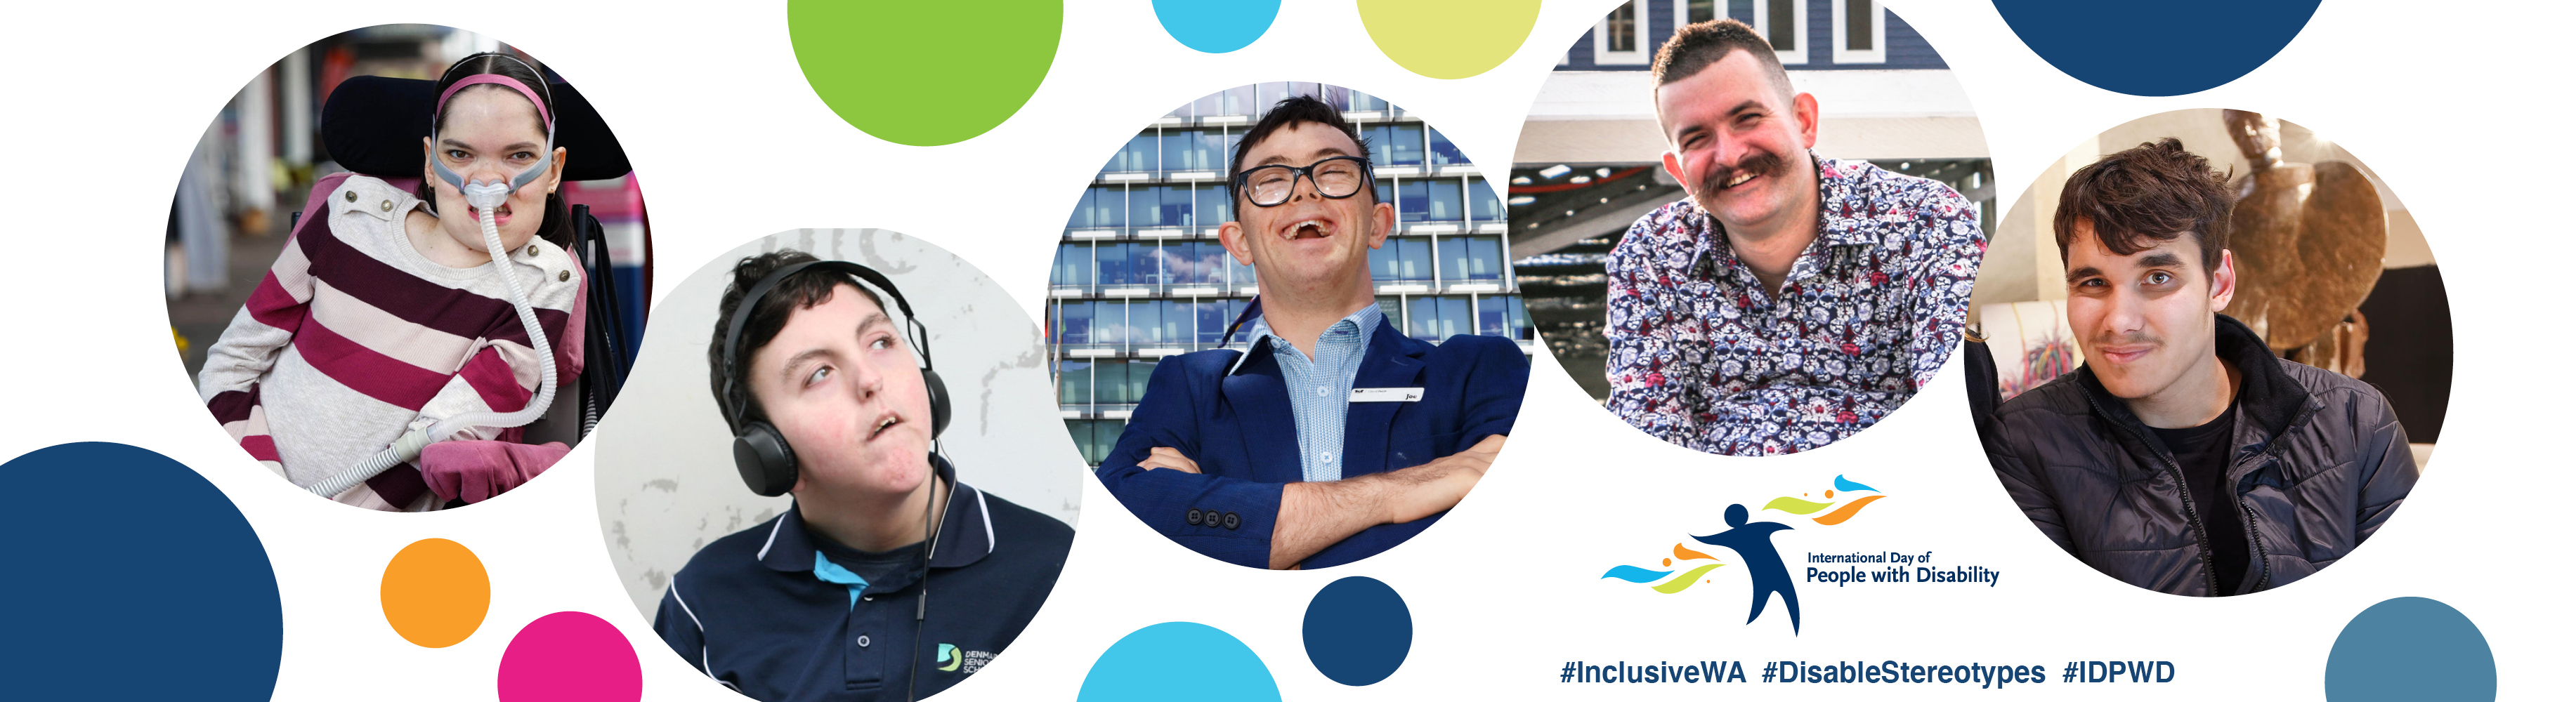 Colourful banner with five individual photos of people alongside the International Day of People with Disability logo and #InclusiveWA #DisabilityStereotypes #IDPWD